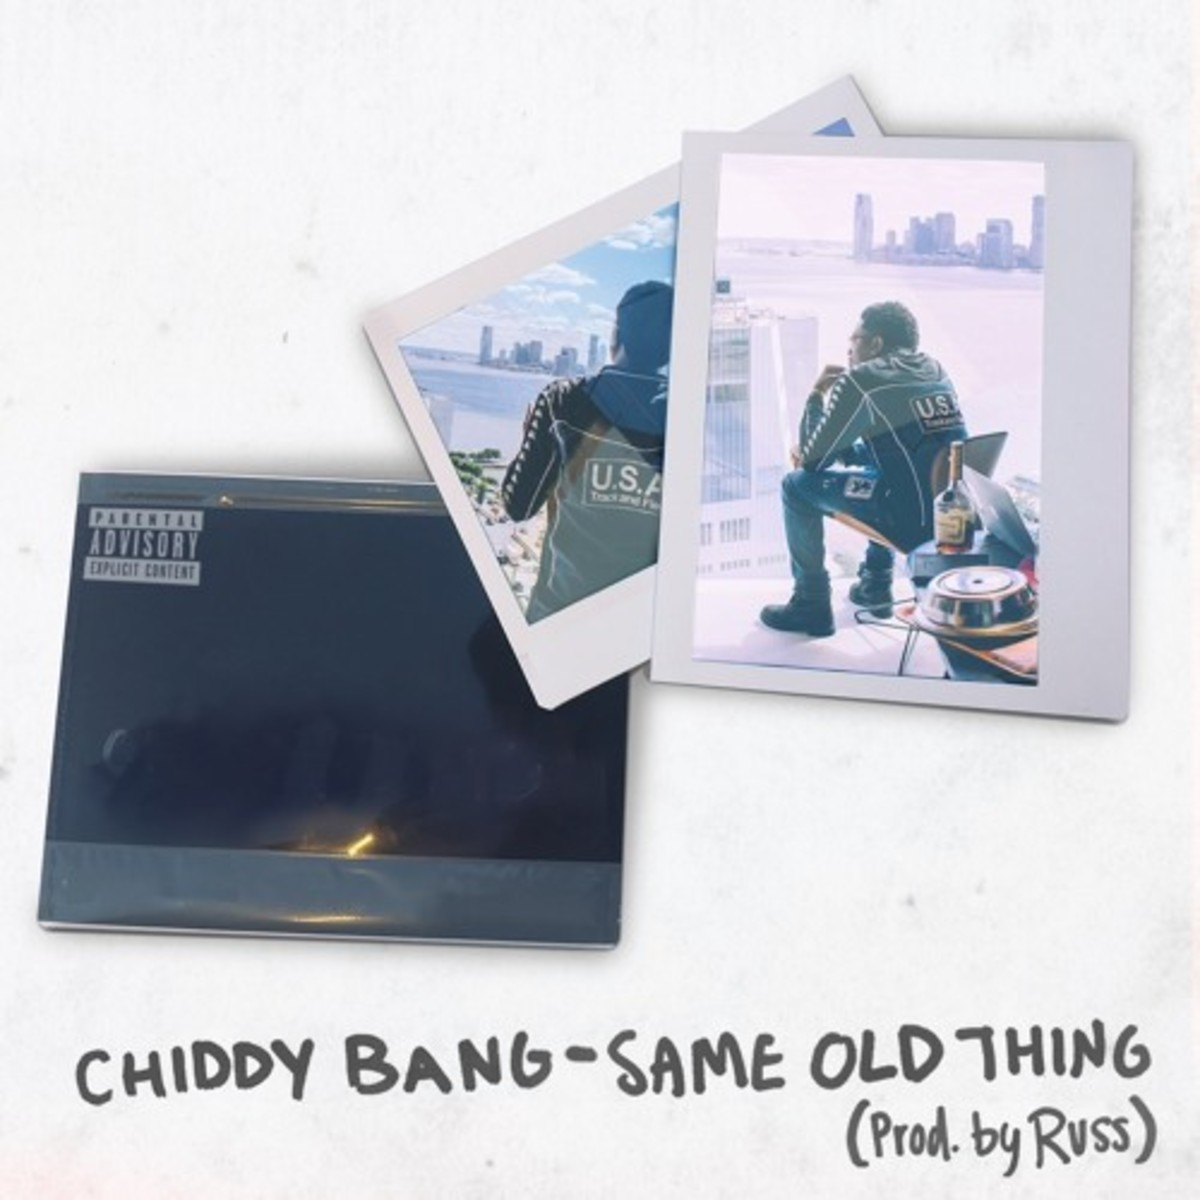 chiddy-bang-same-old-thing.jpg